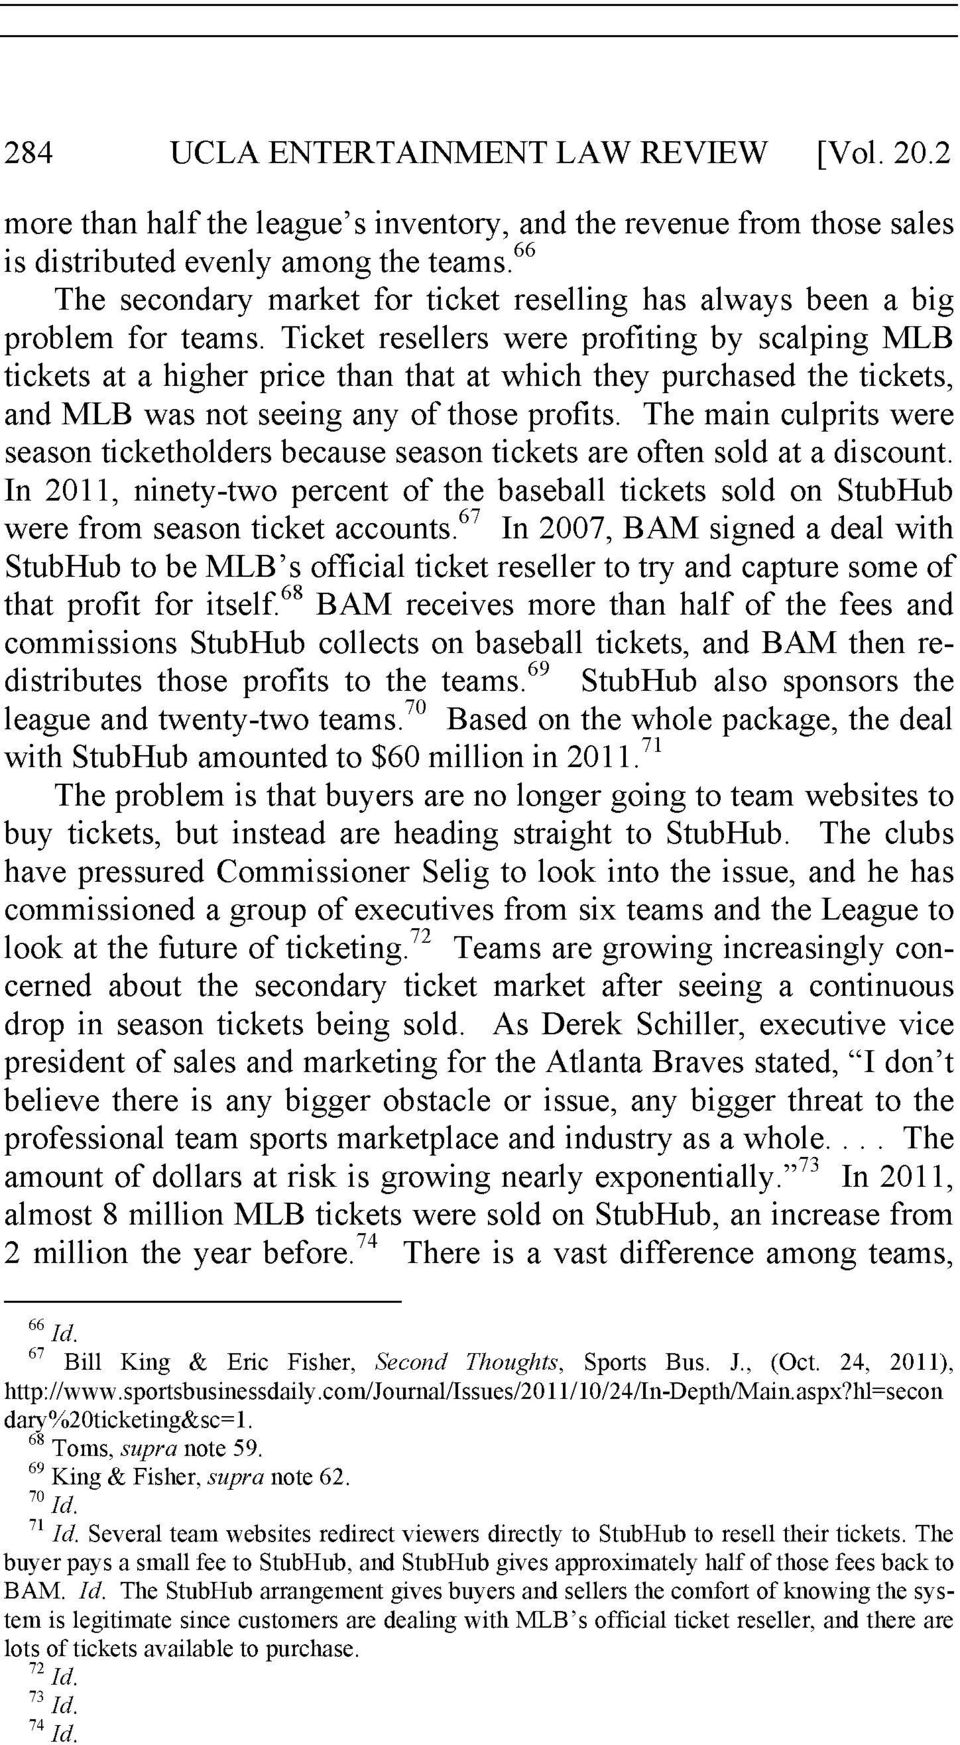 Ticket resellers were profiting by scalping MLB tickets at a higher price than that at which they purchased the tickets, and MLB was not seeing any of those profits.